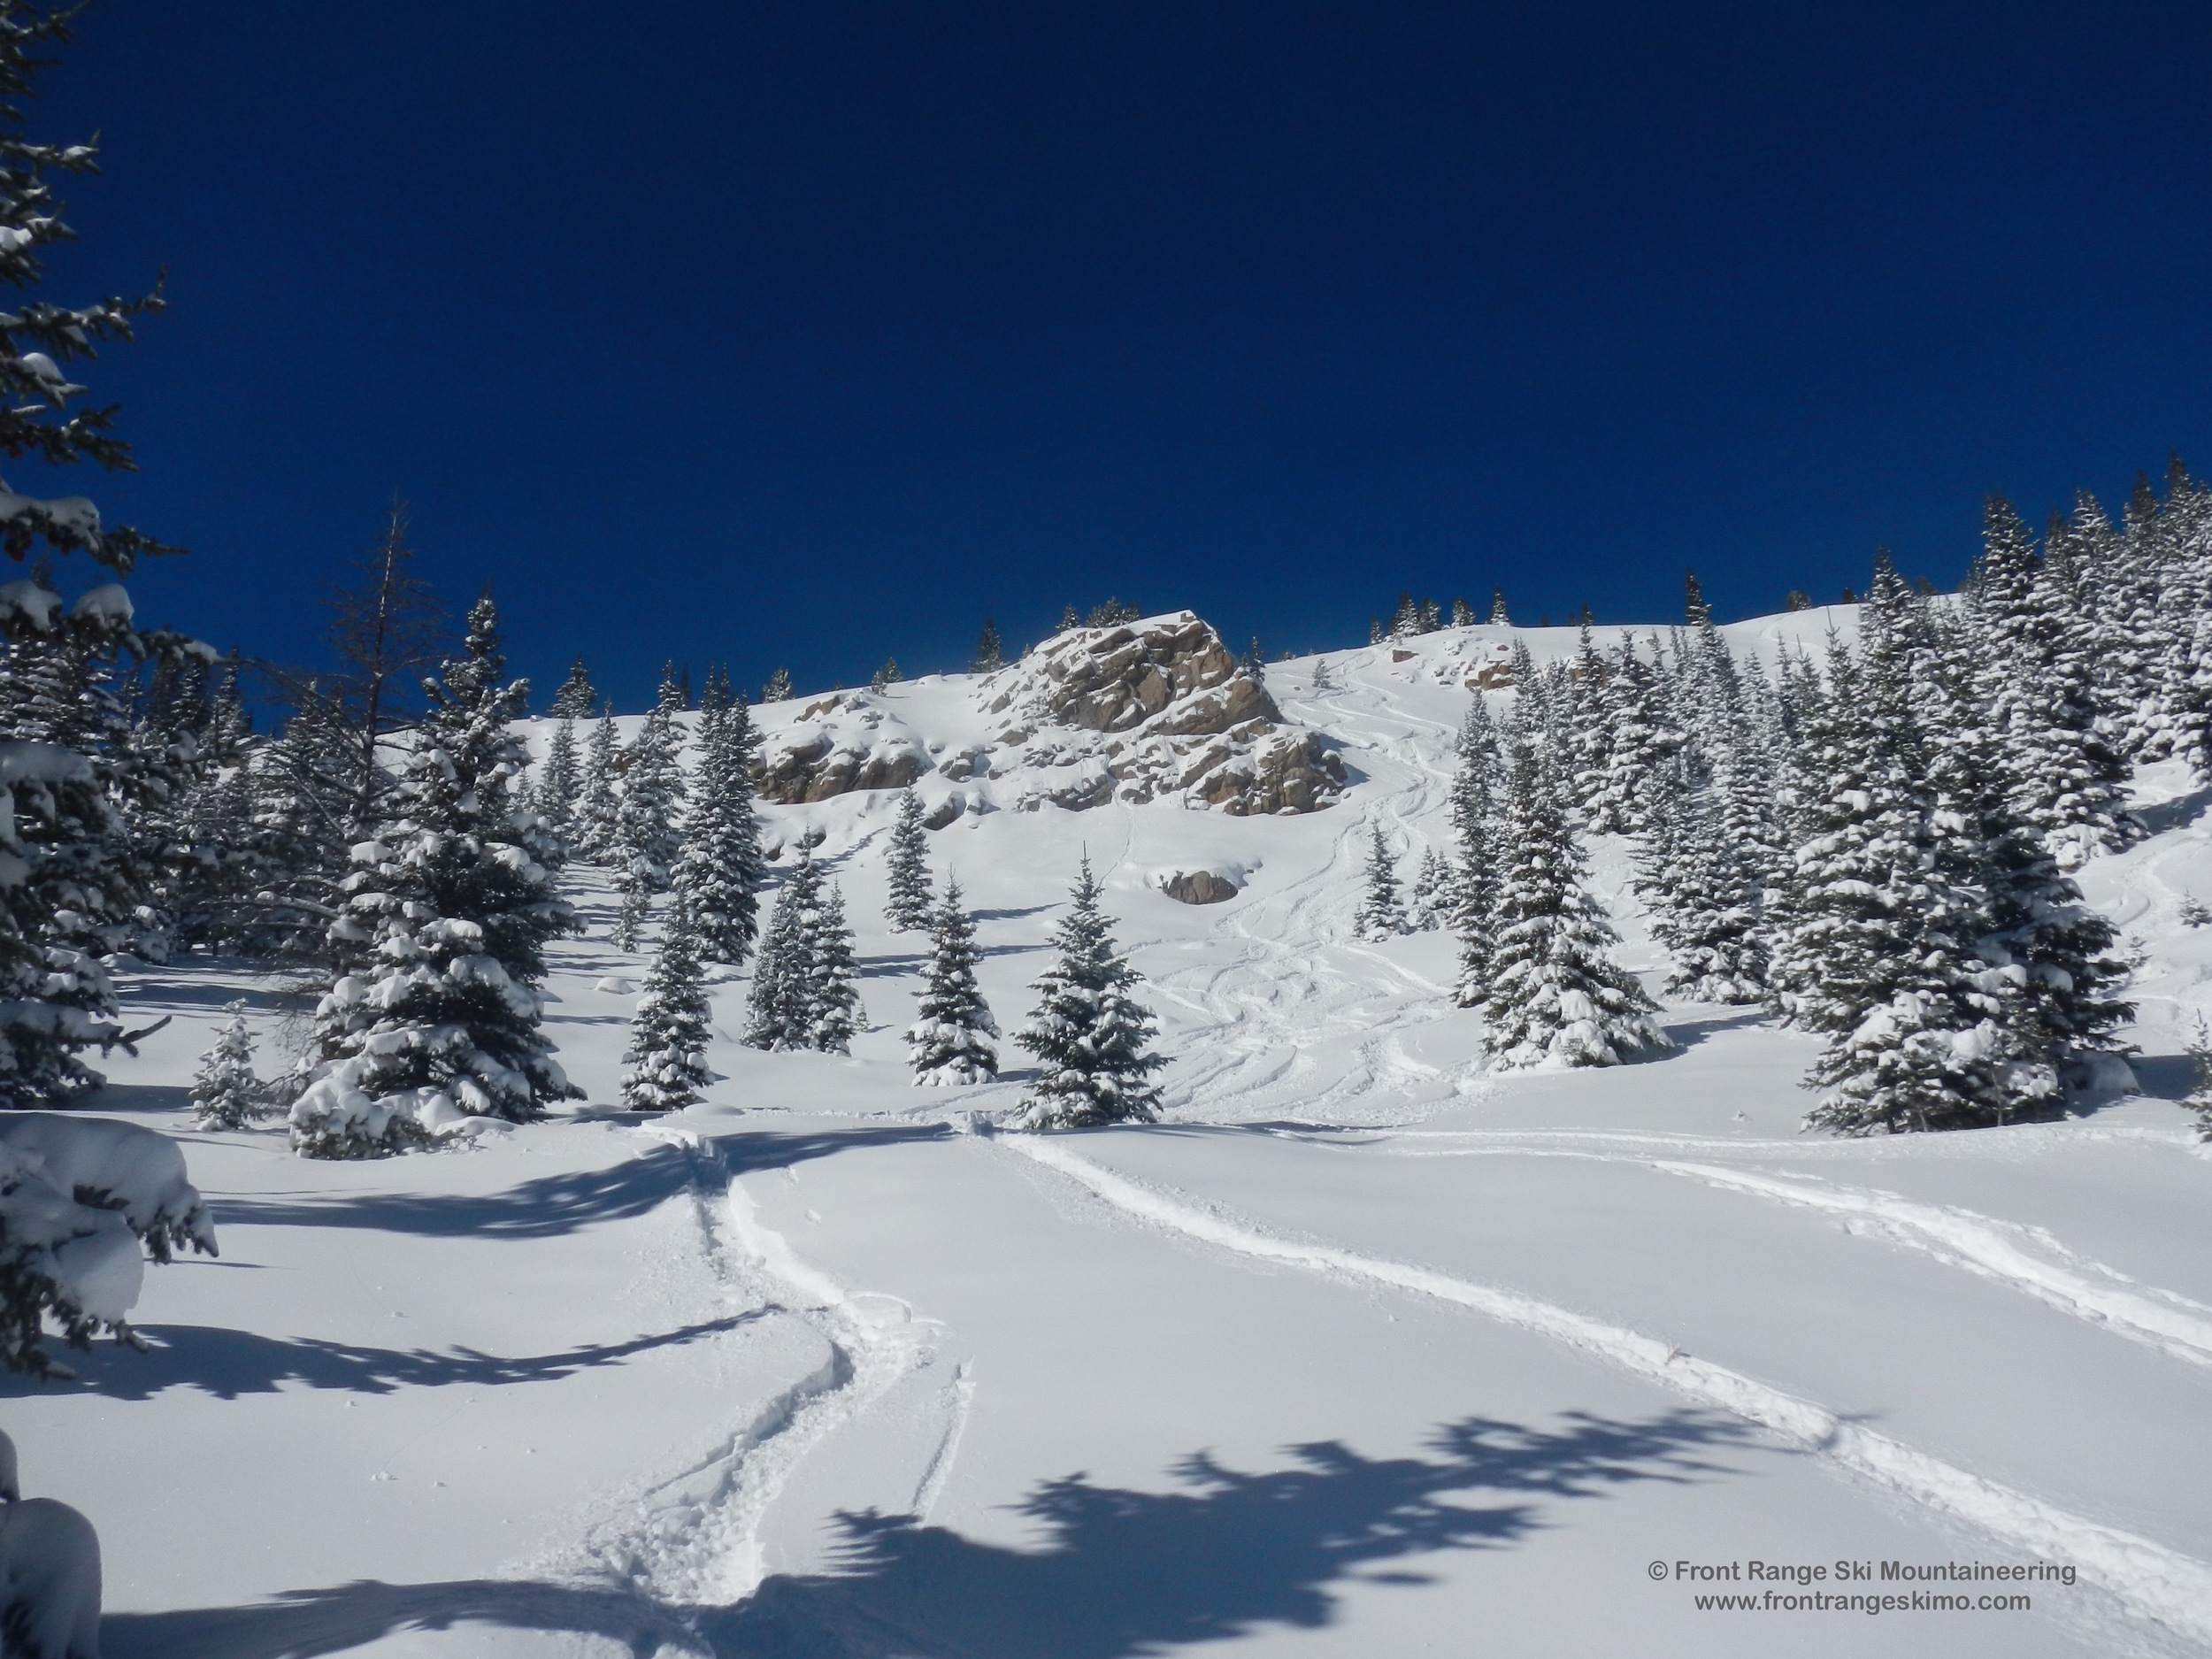 A view into the skier's left side of the 110 Cliffs.